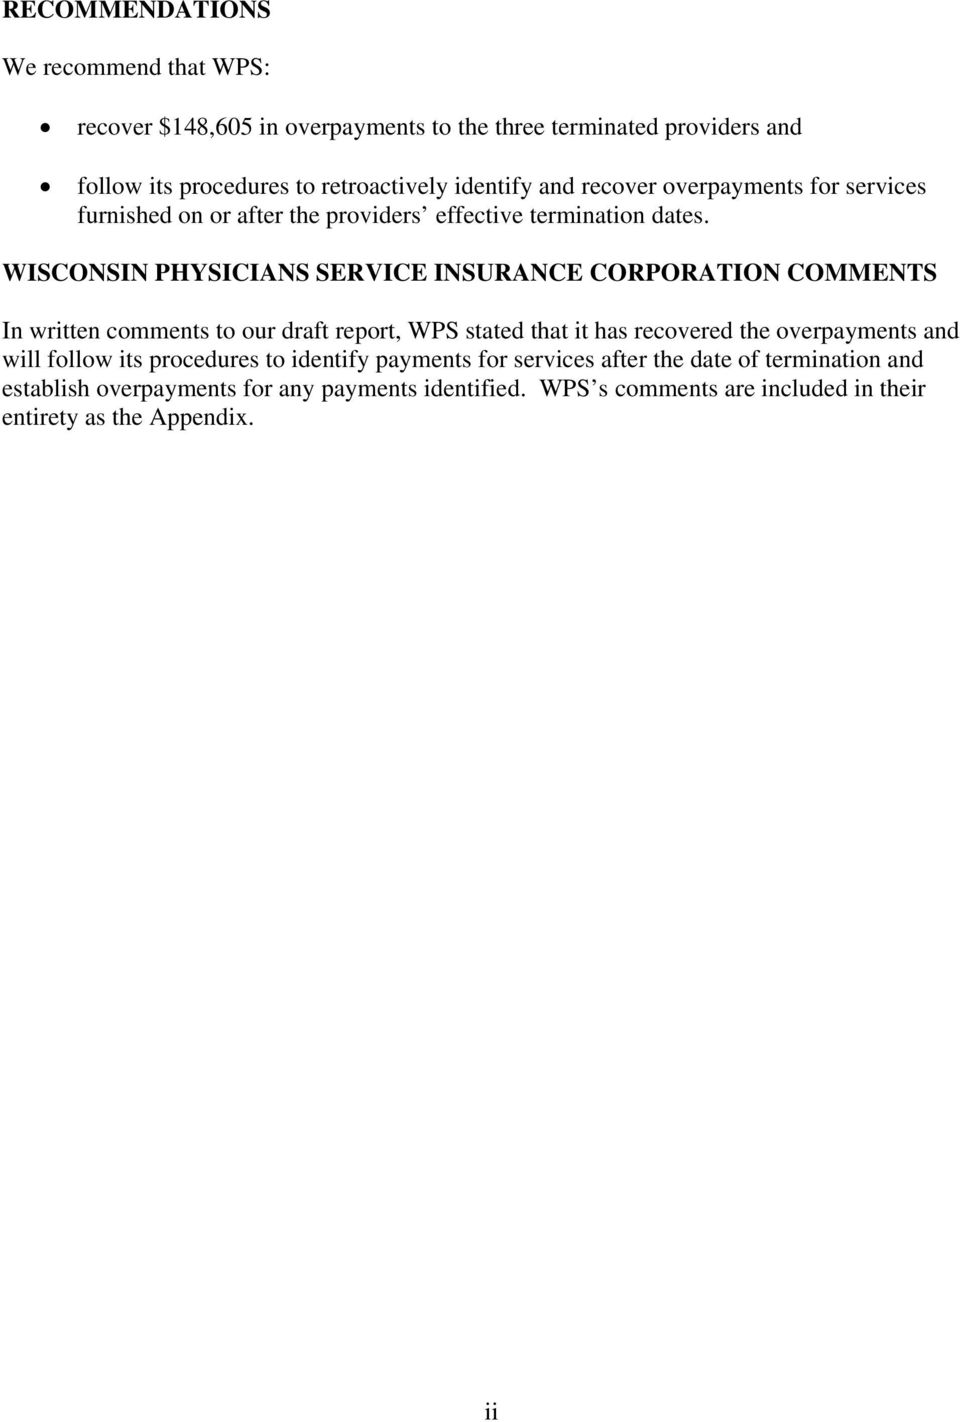 WISCONSIN PHYSICIANS SERVICE INSURANCE CORPORATION COMMENTS In written comments to our draft report, WPS stated that it has recovered the overpayments and